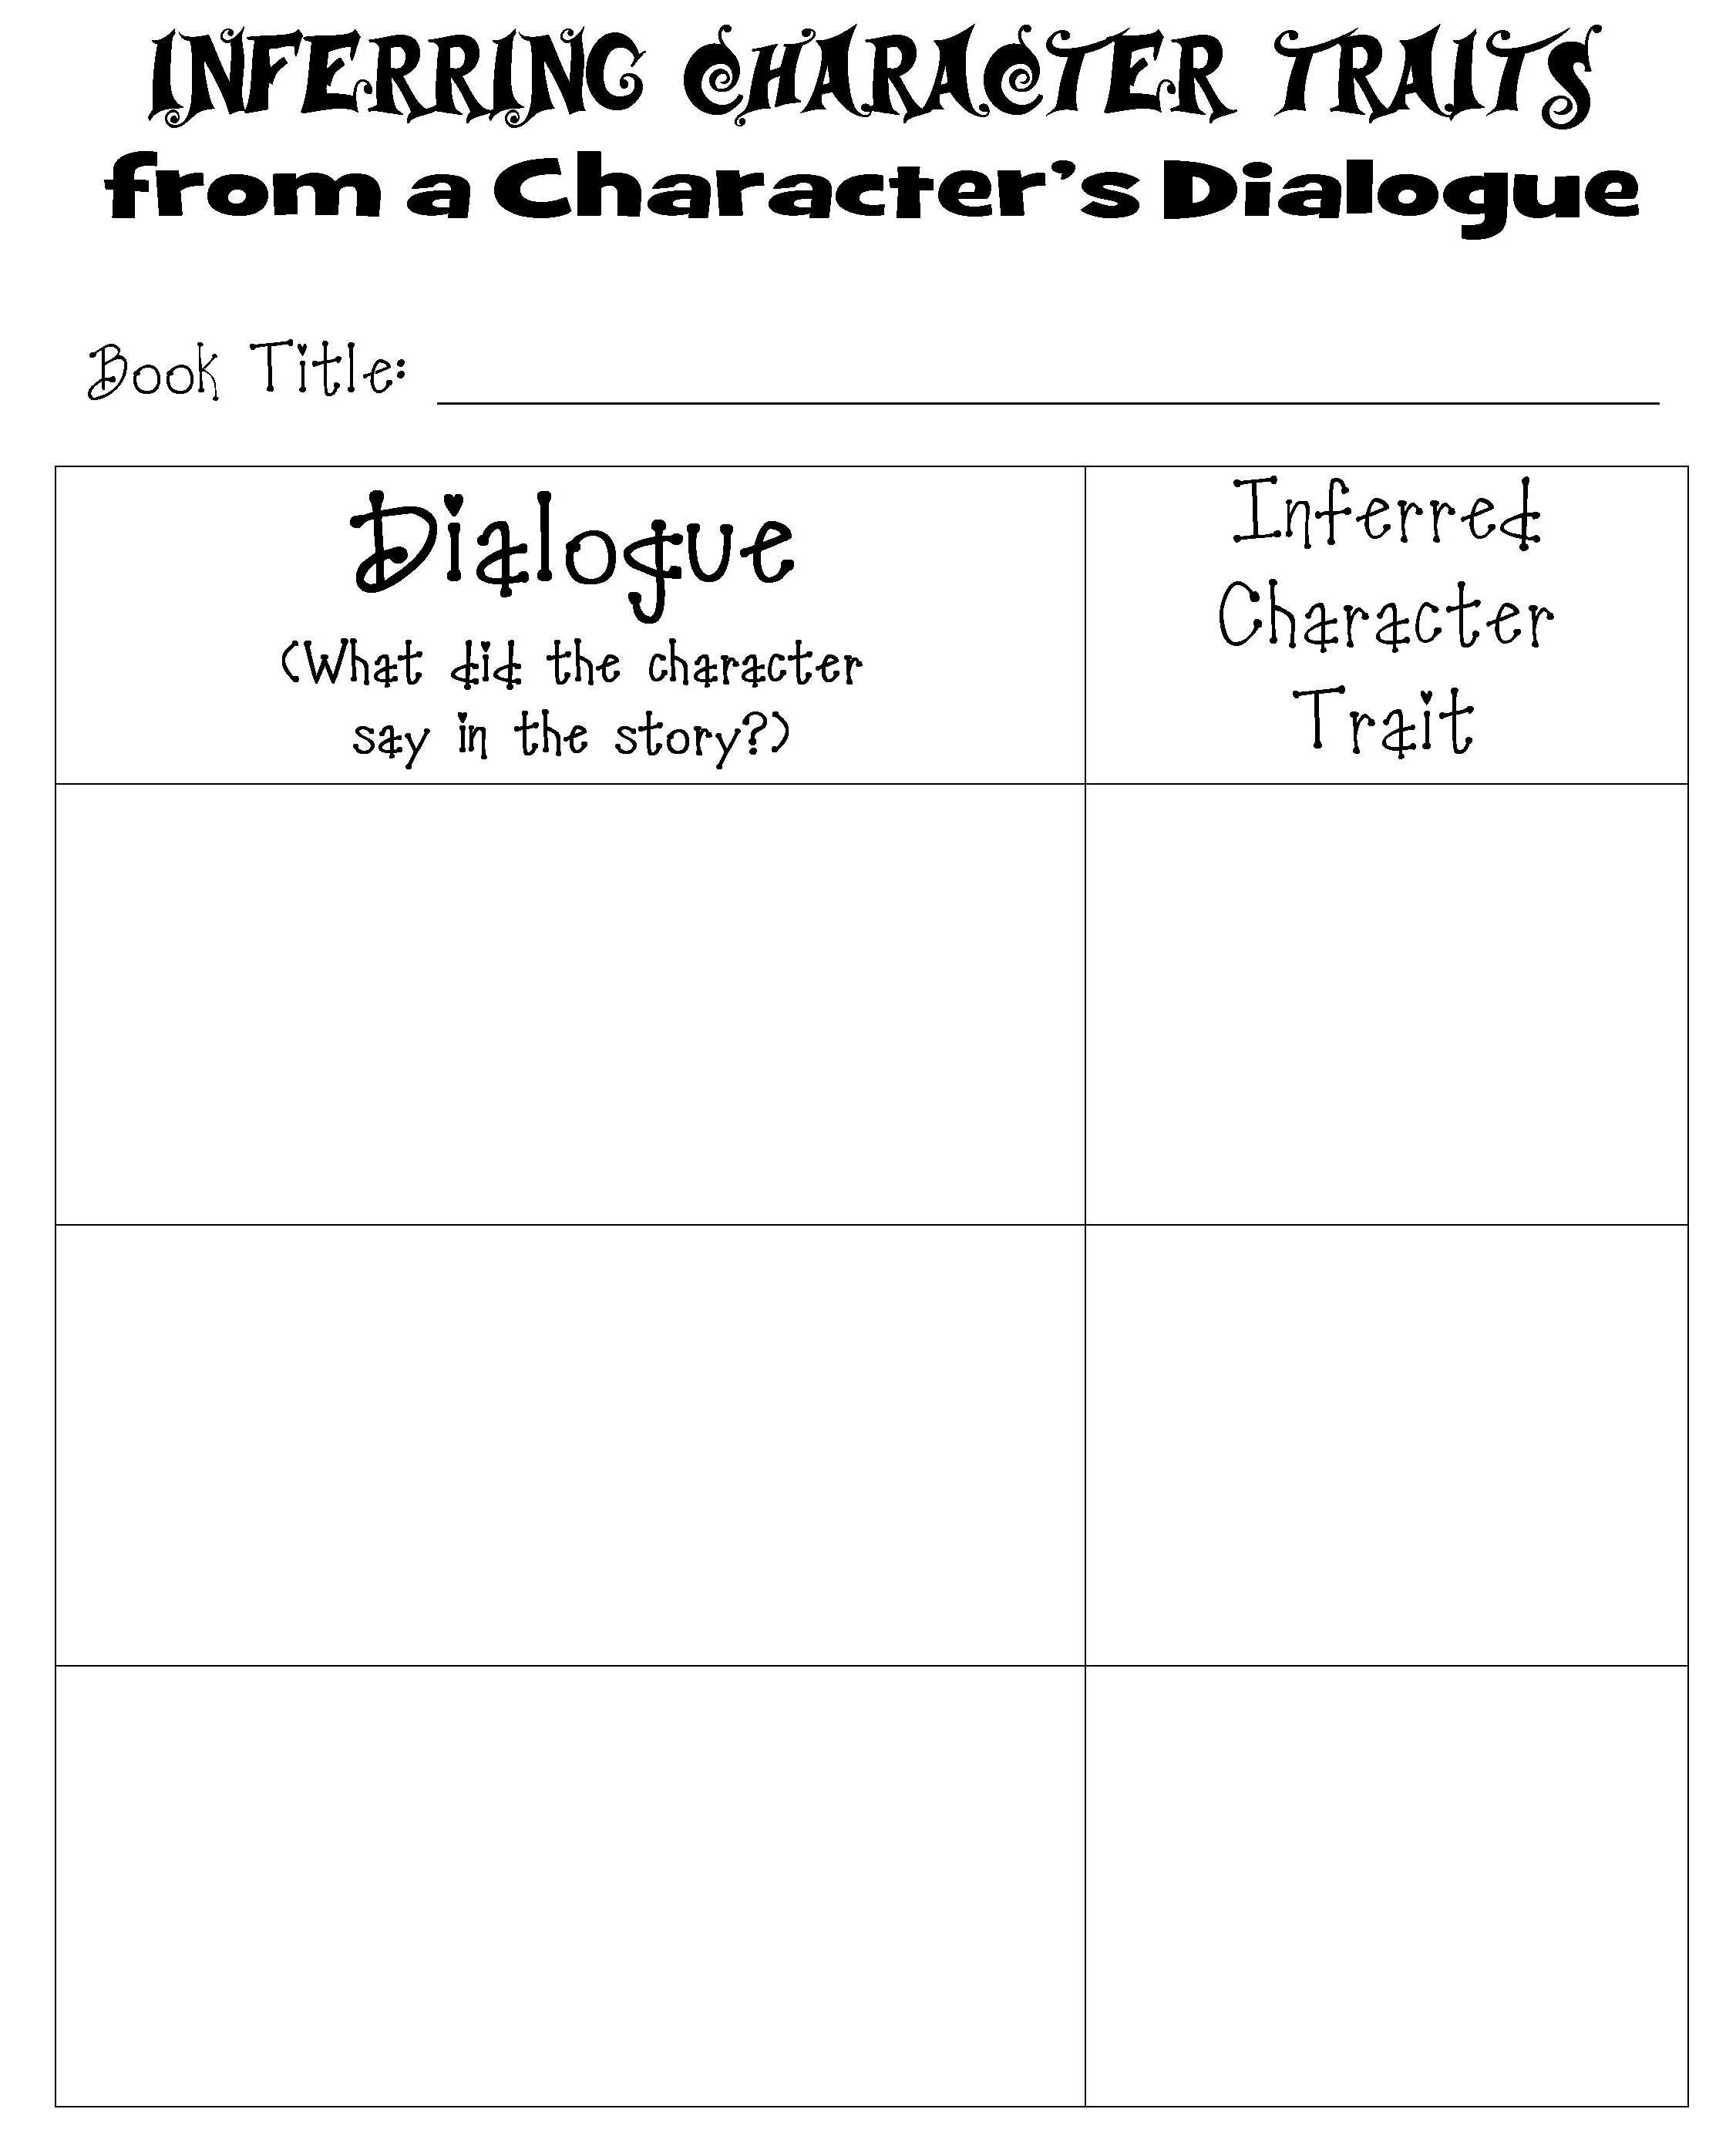 Character Traits Worksheet 3rd Grade and Character Traits Worksheet Pdf Worksheet for Kids Maths